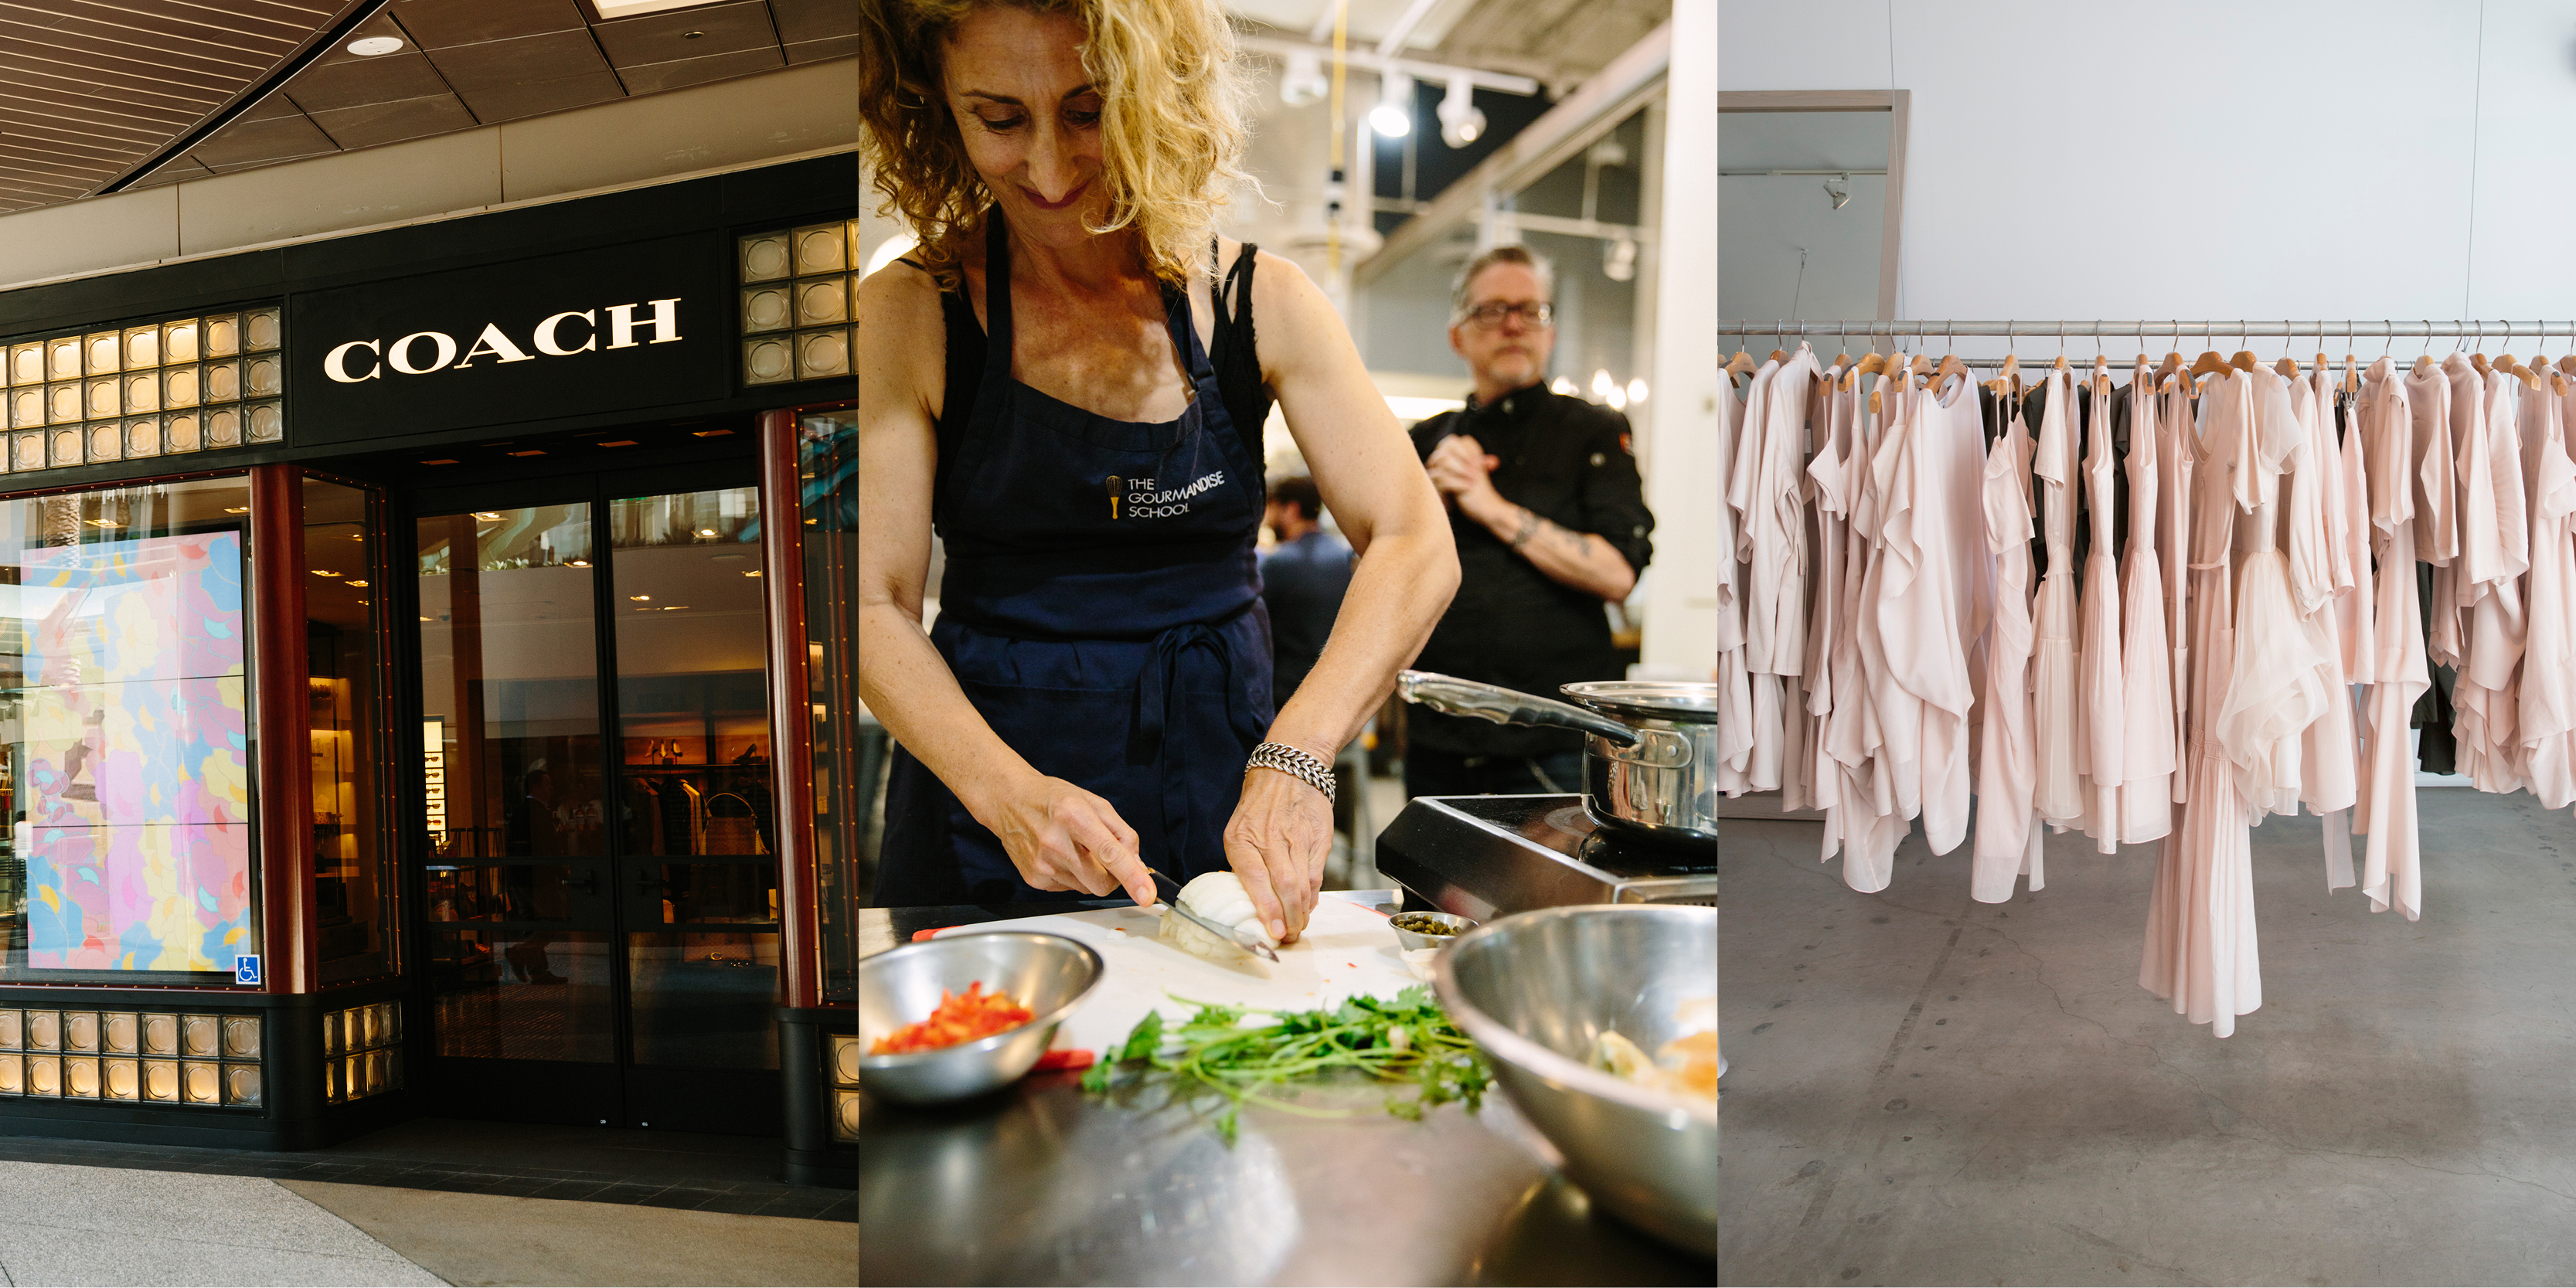 Luxury activities in Santa Monica: Coach storefront, woman cooking at Gourmandise School, luxury boutique